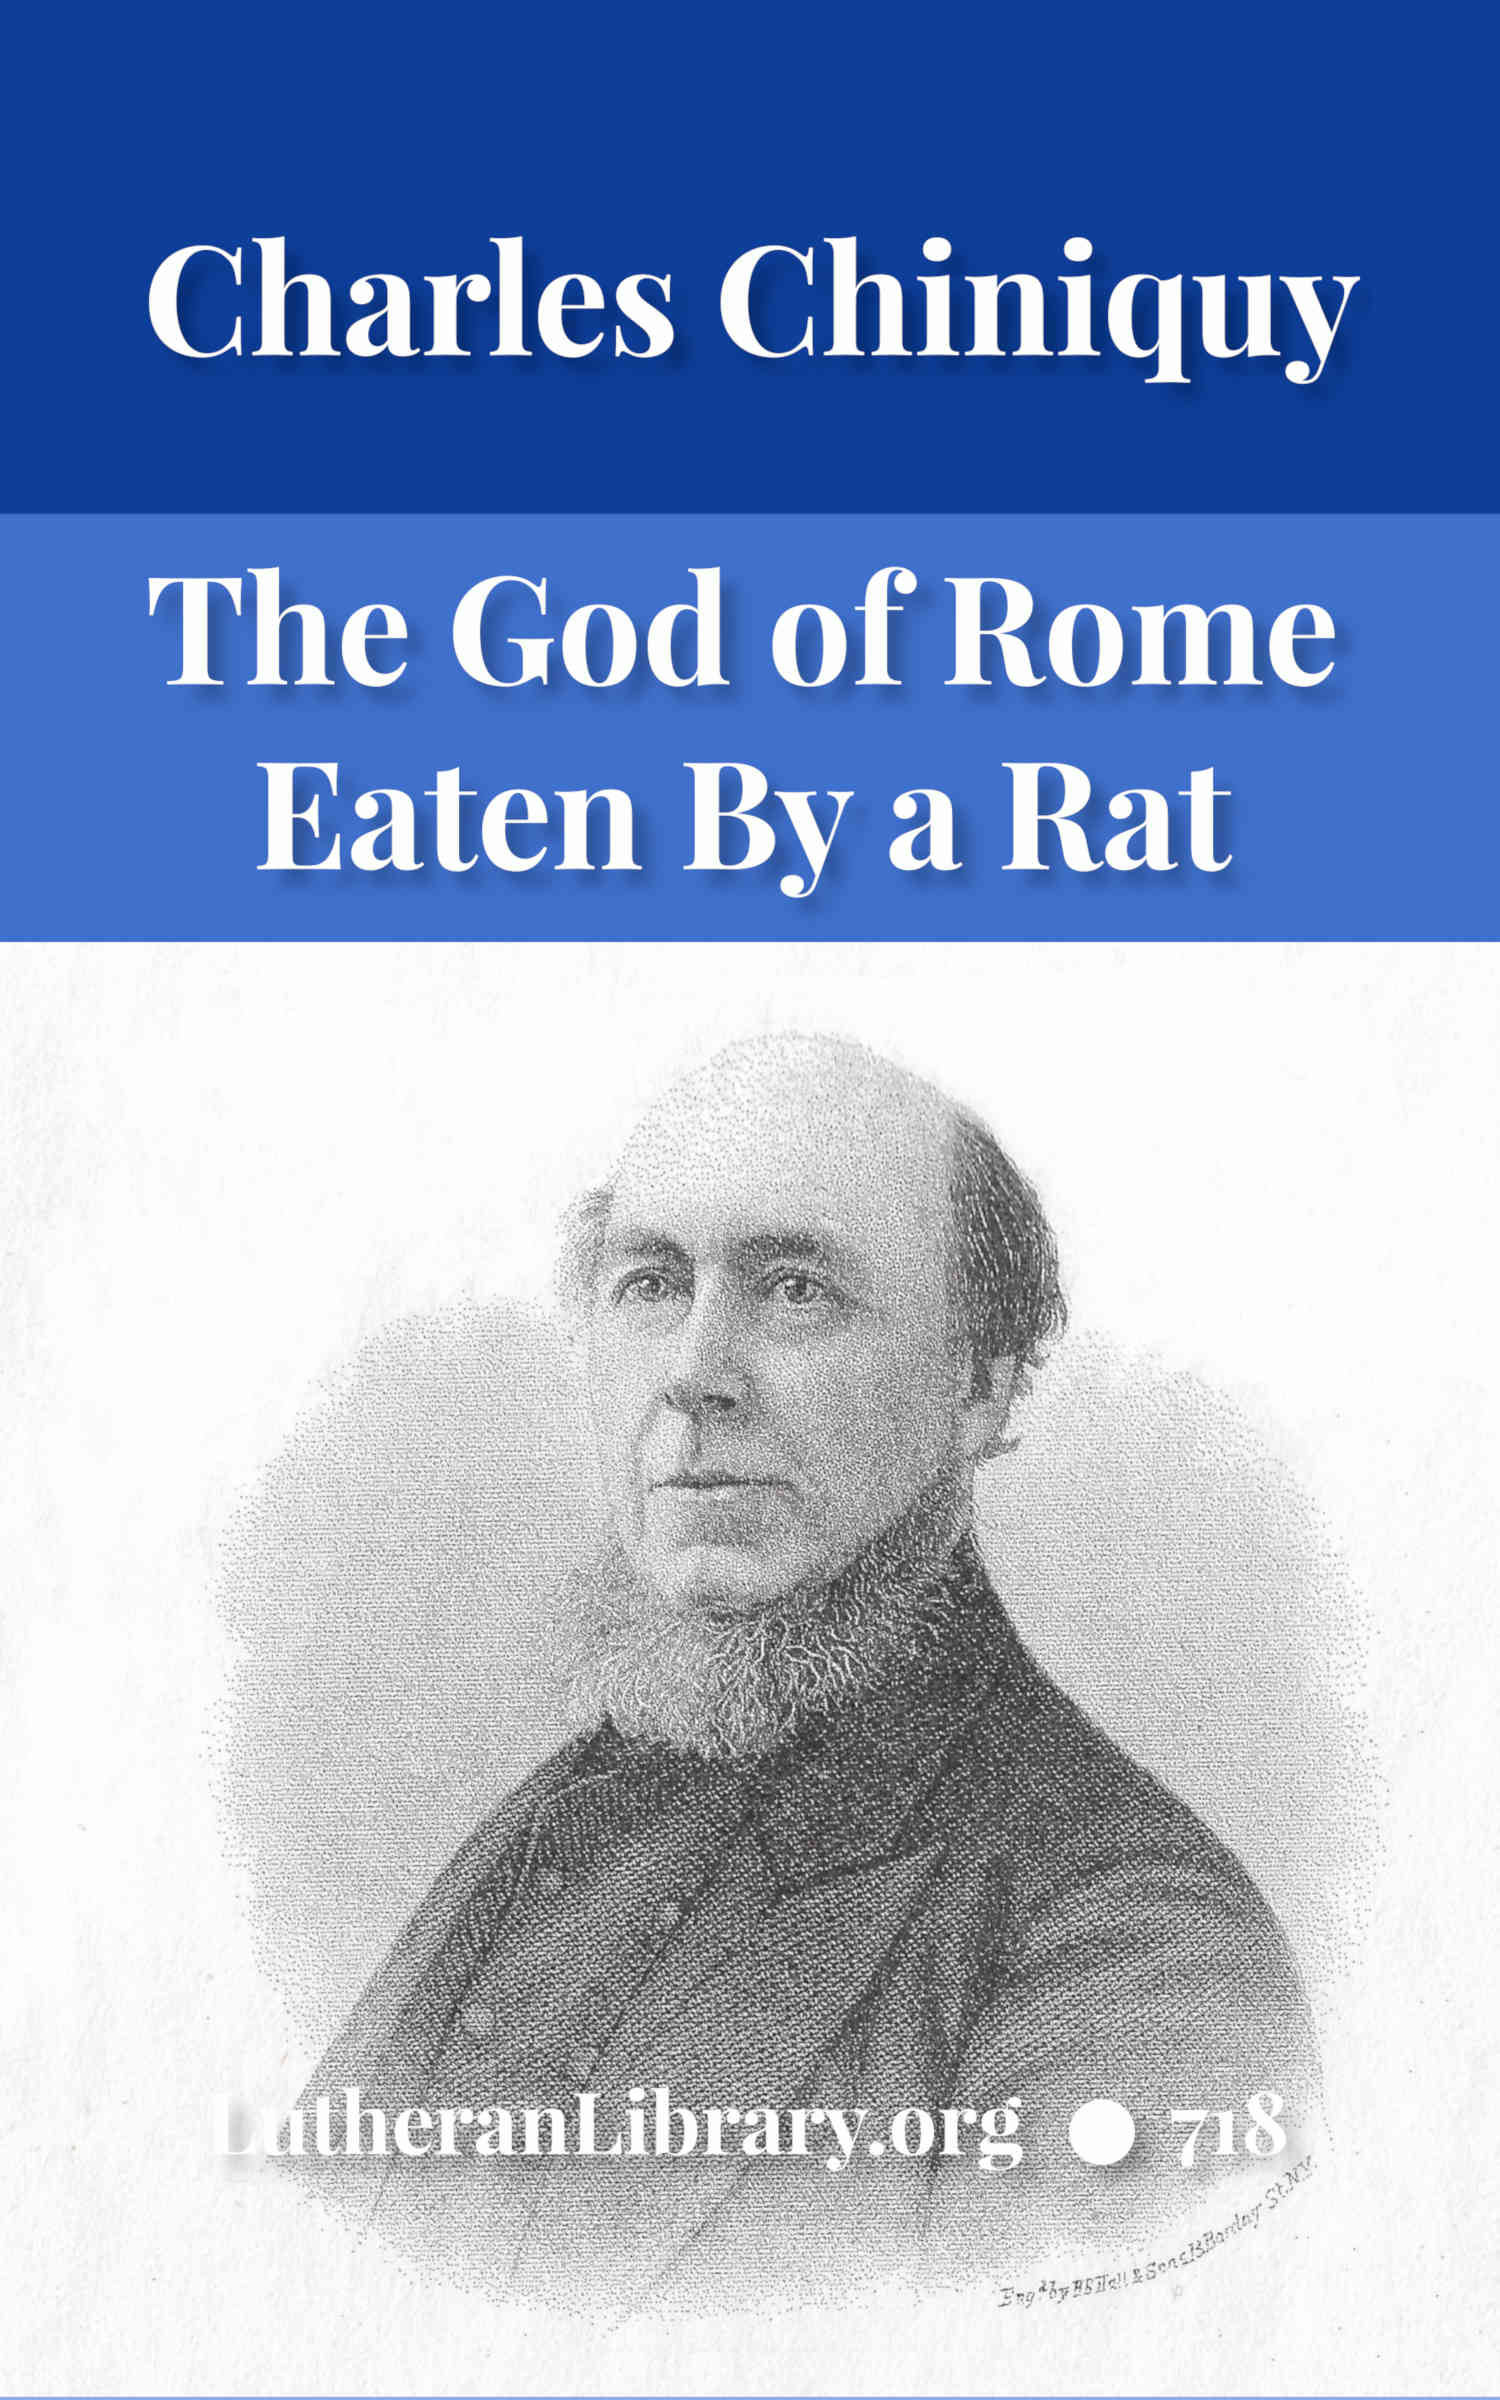 The God of Rome Eaten By A Rat by Charles Chiniquy